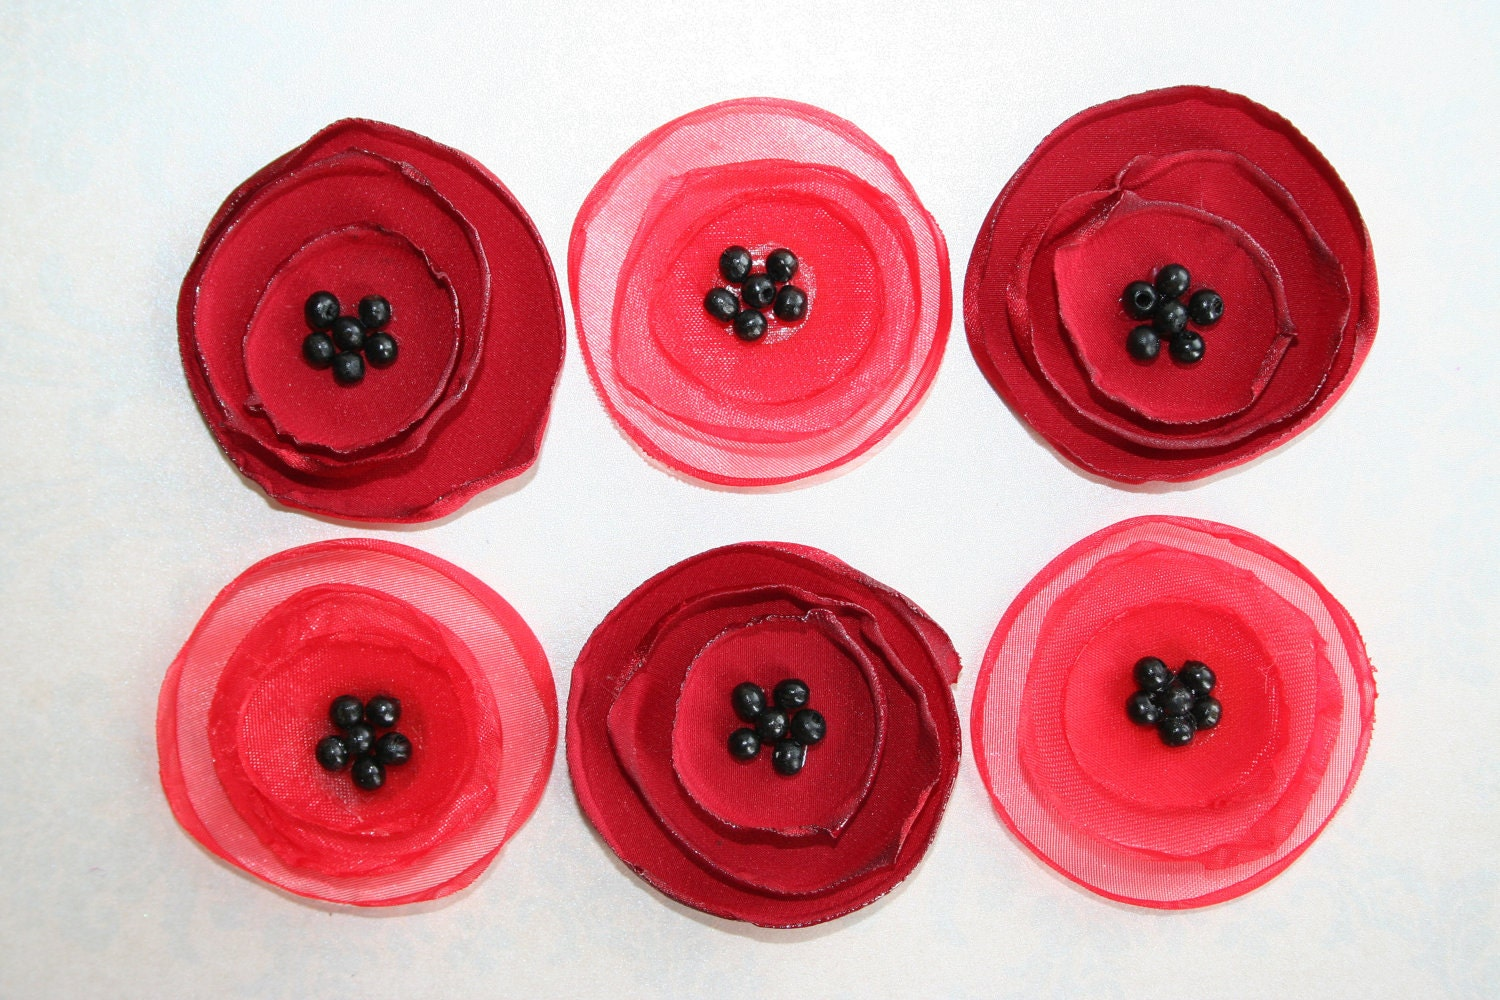 Bright Red And Cherry Red POPPY Fabric Flowers Wholesale